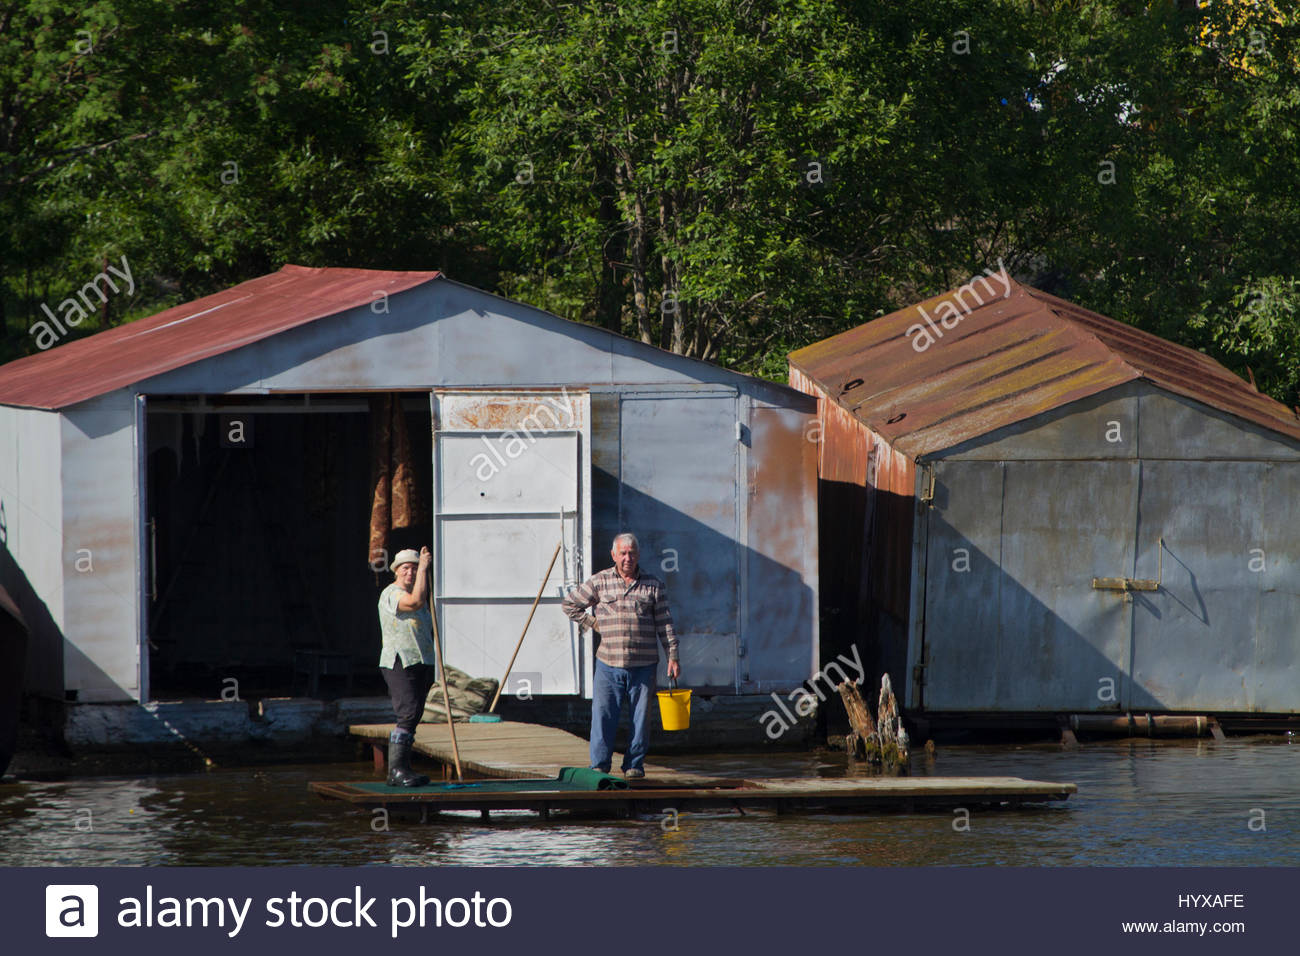 A man and woman pause in their work to watch a tour boat pass on the Sheksna River in Russia. - Stock Image